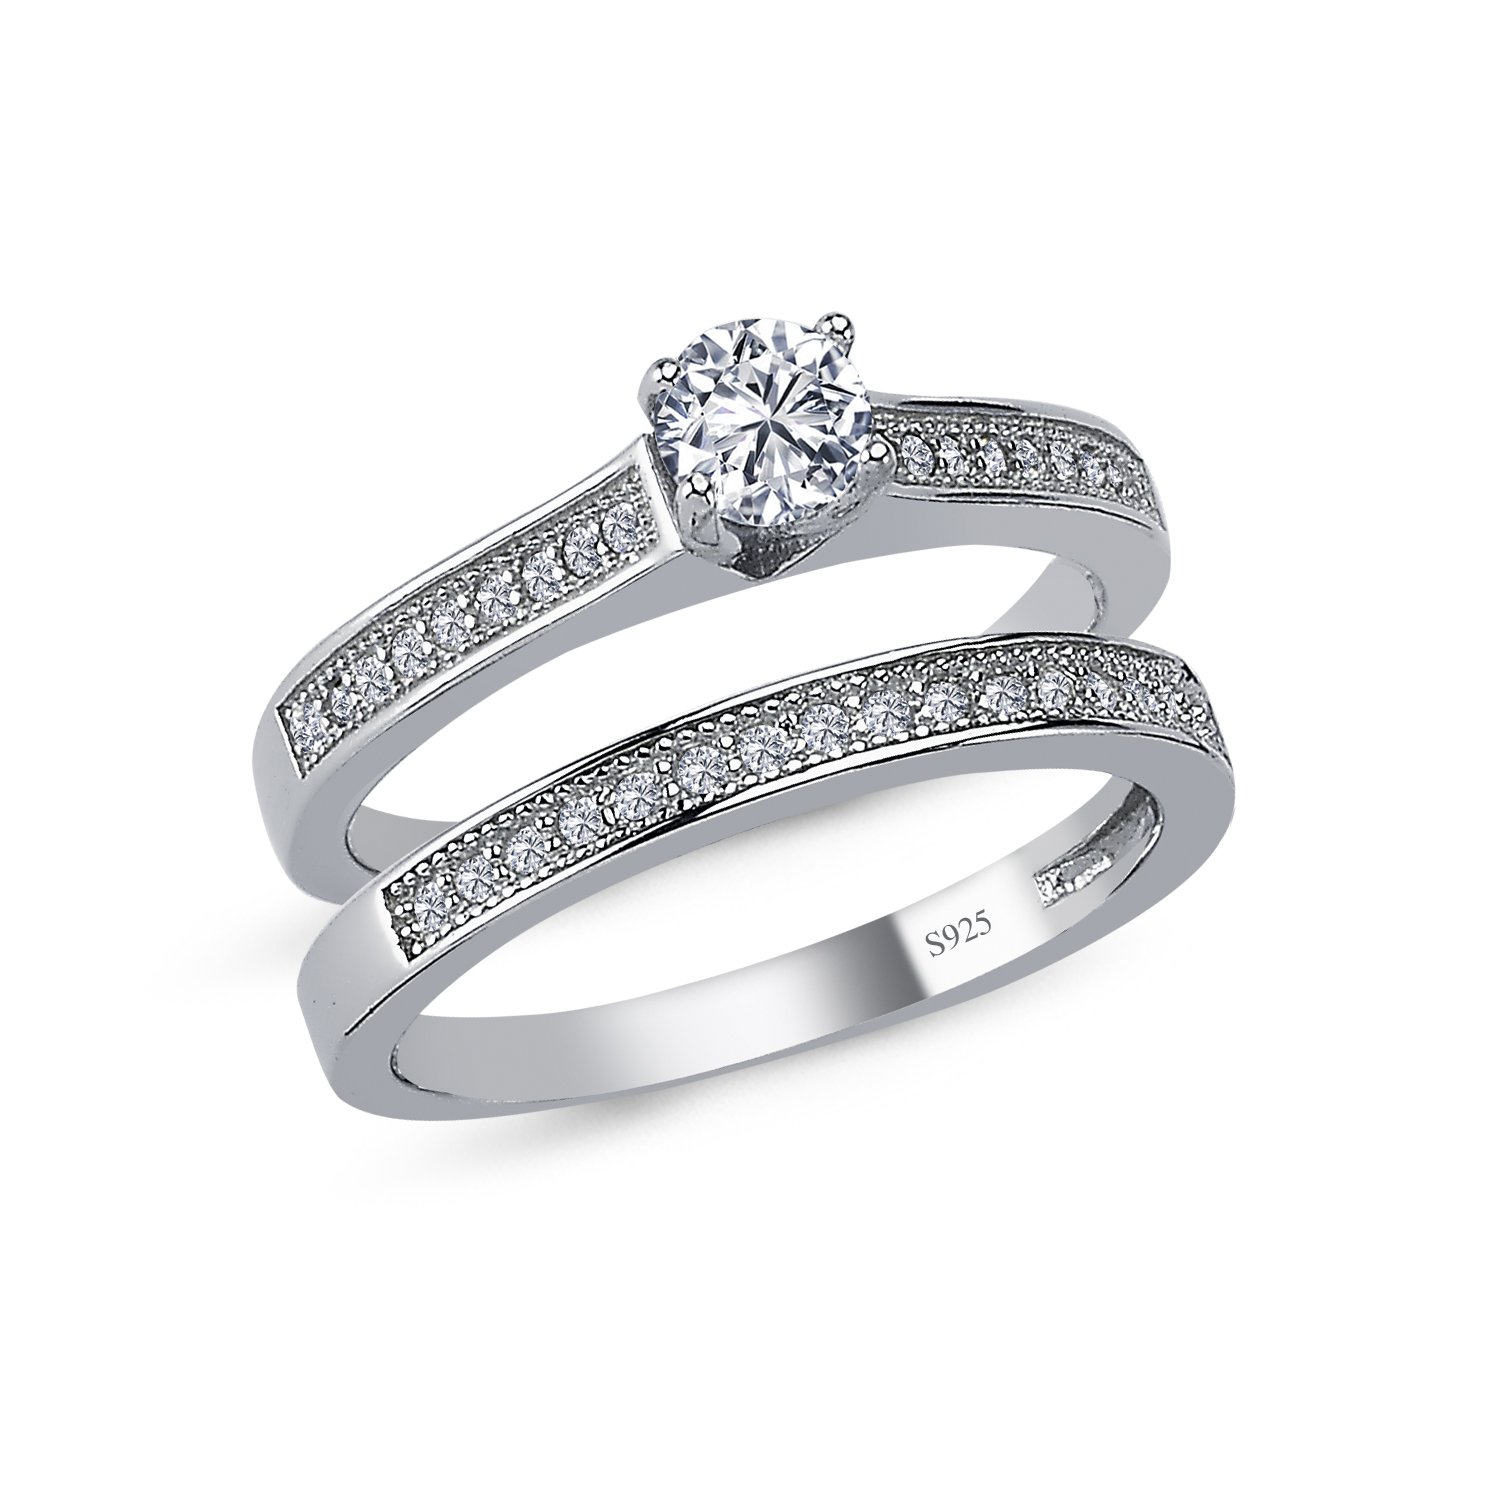 925 Solid Sterling Silver Cushion Halo AAAAA+ Gem Grade Quality ROUND BRILLIANT Cut 2 Pieces RING Set,Bridal Sets Anniversary Promise Engagement Wedding CZ Rings Comfort Fit and Rhodium Plated